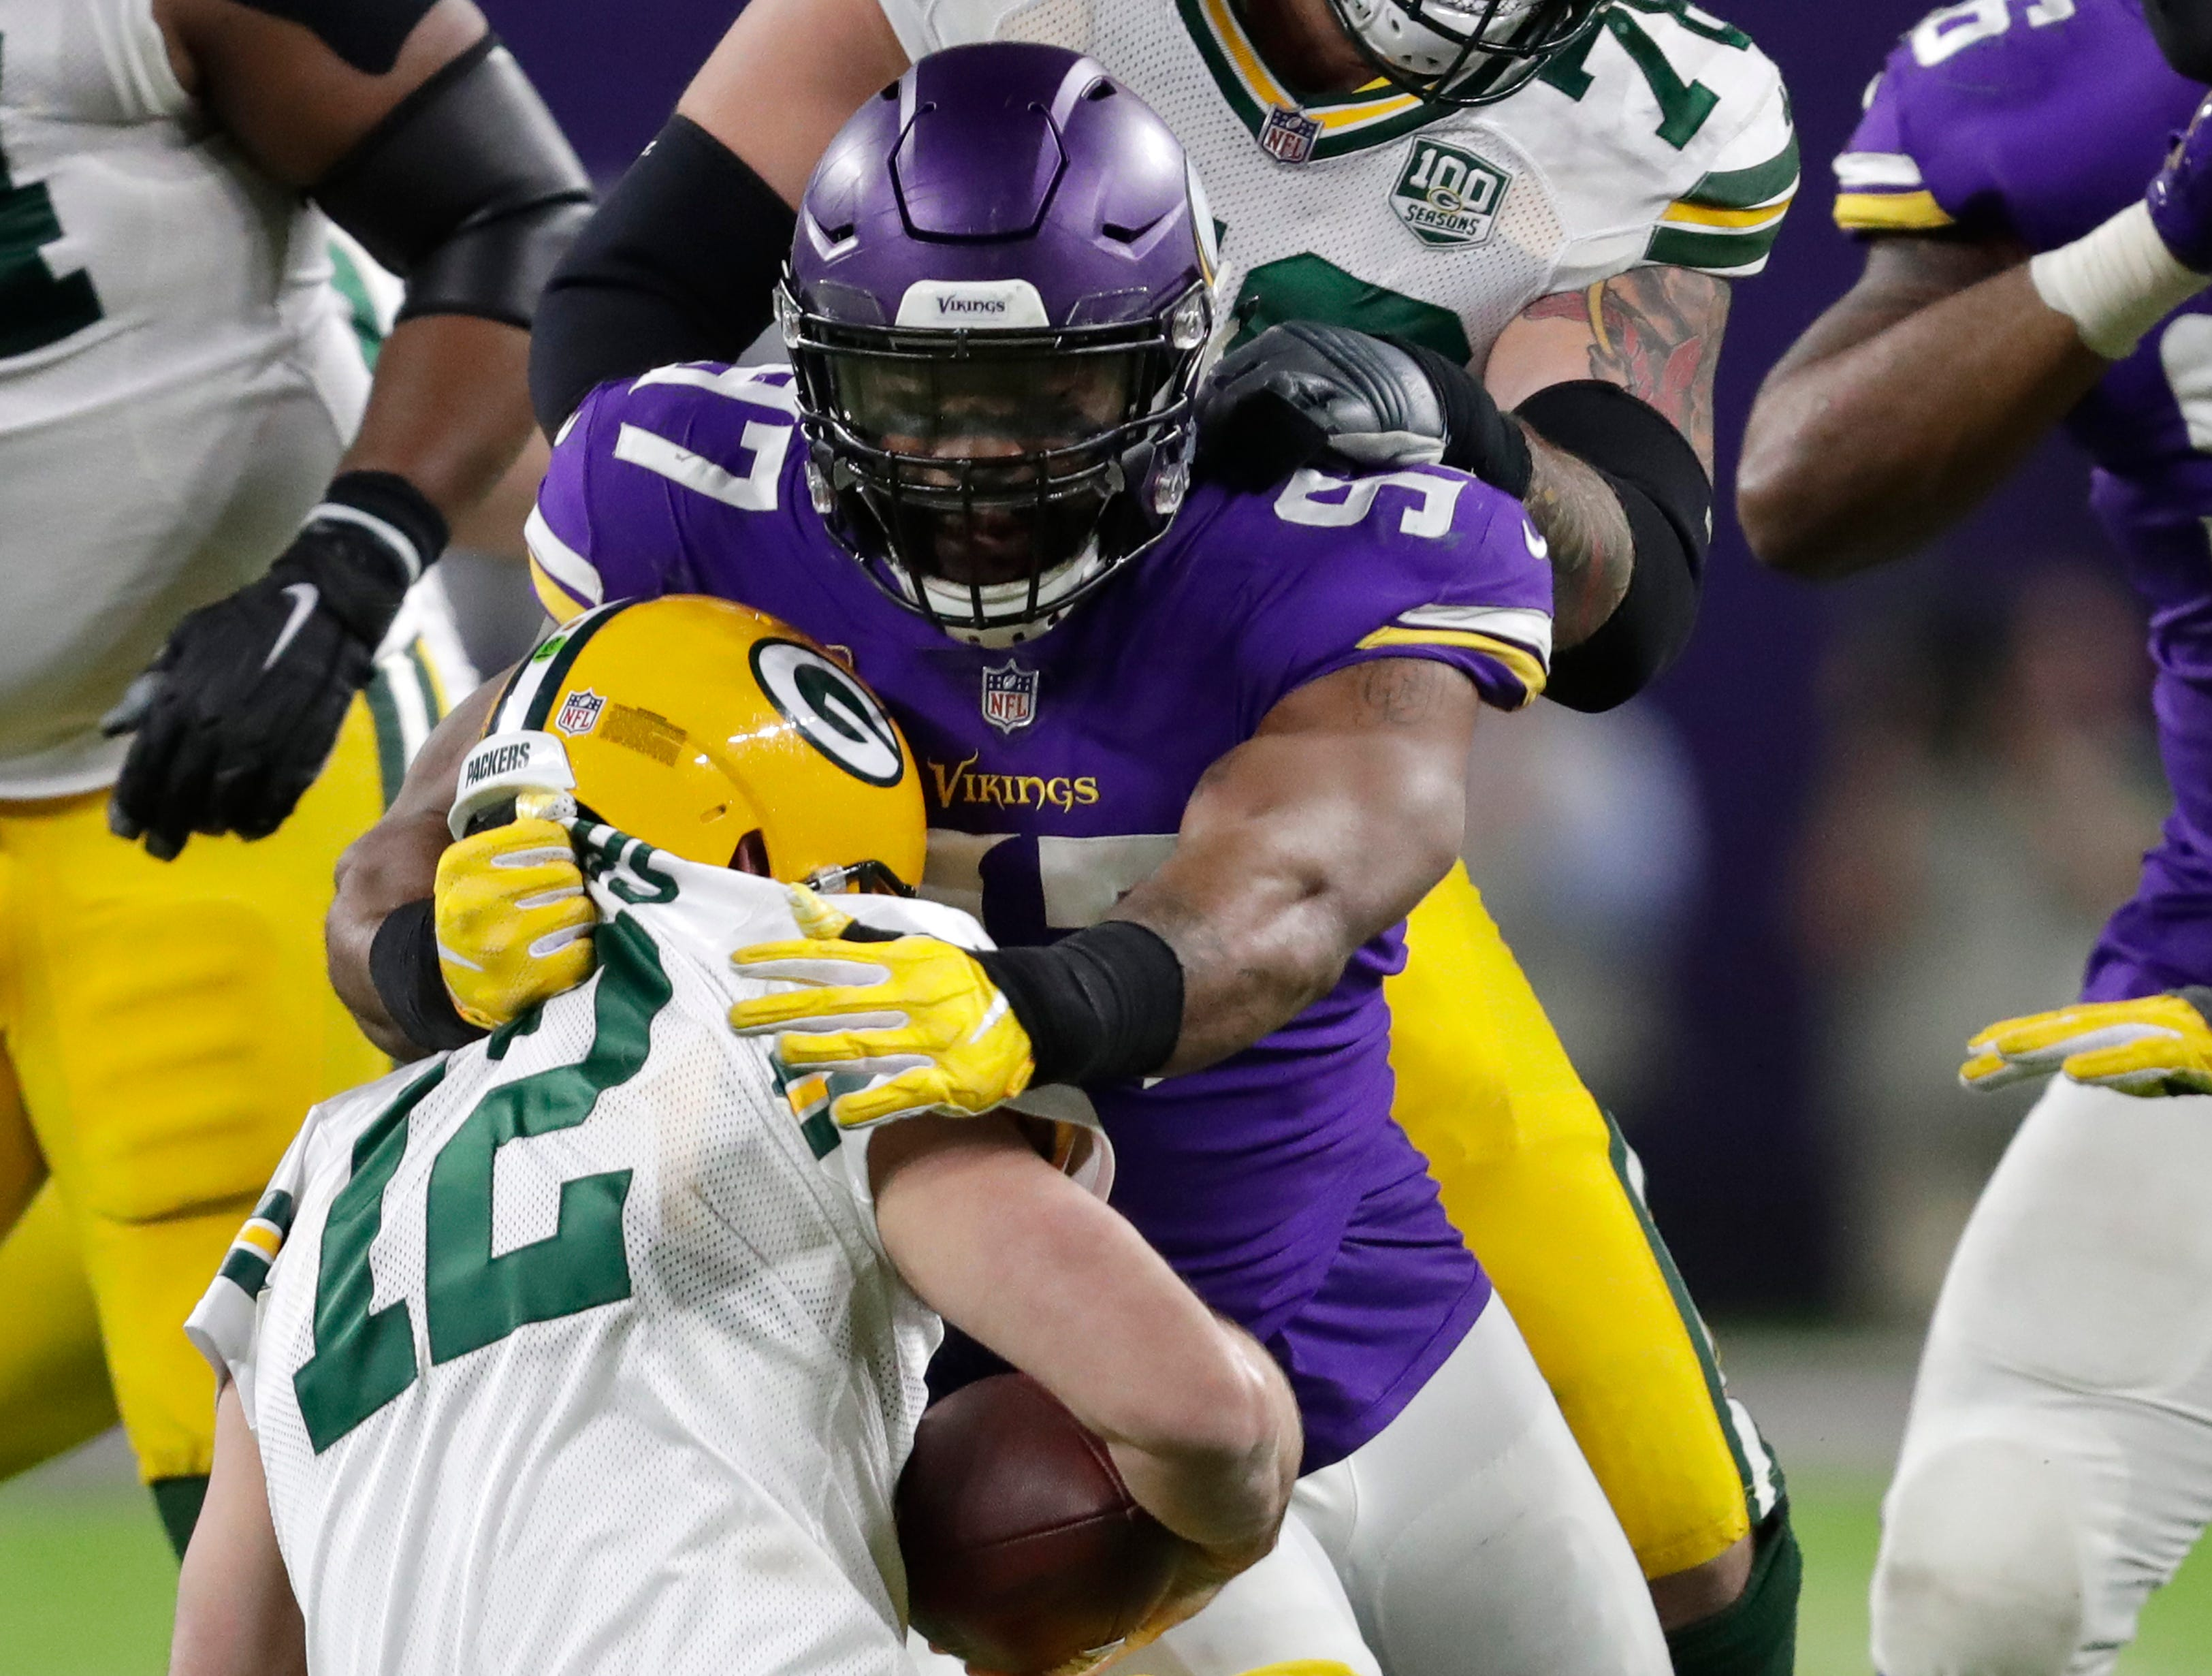 Minnesota Vikings defensive end Everson Griffen (97) sacks Green Bay Packers quarterback Aaron Rodgers (12) in the fourth quarter during their football game Sunday, November 25, 2018, at U.S. Bank Stadium in Minneapolis, Minn. 